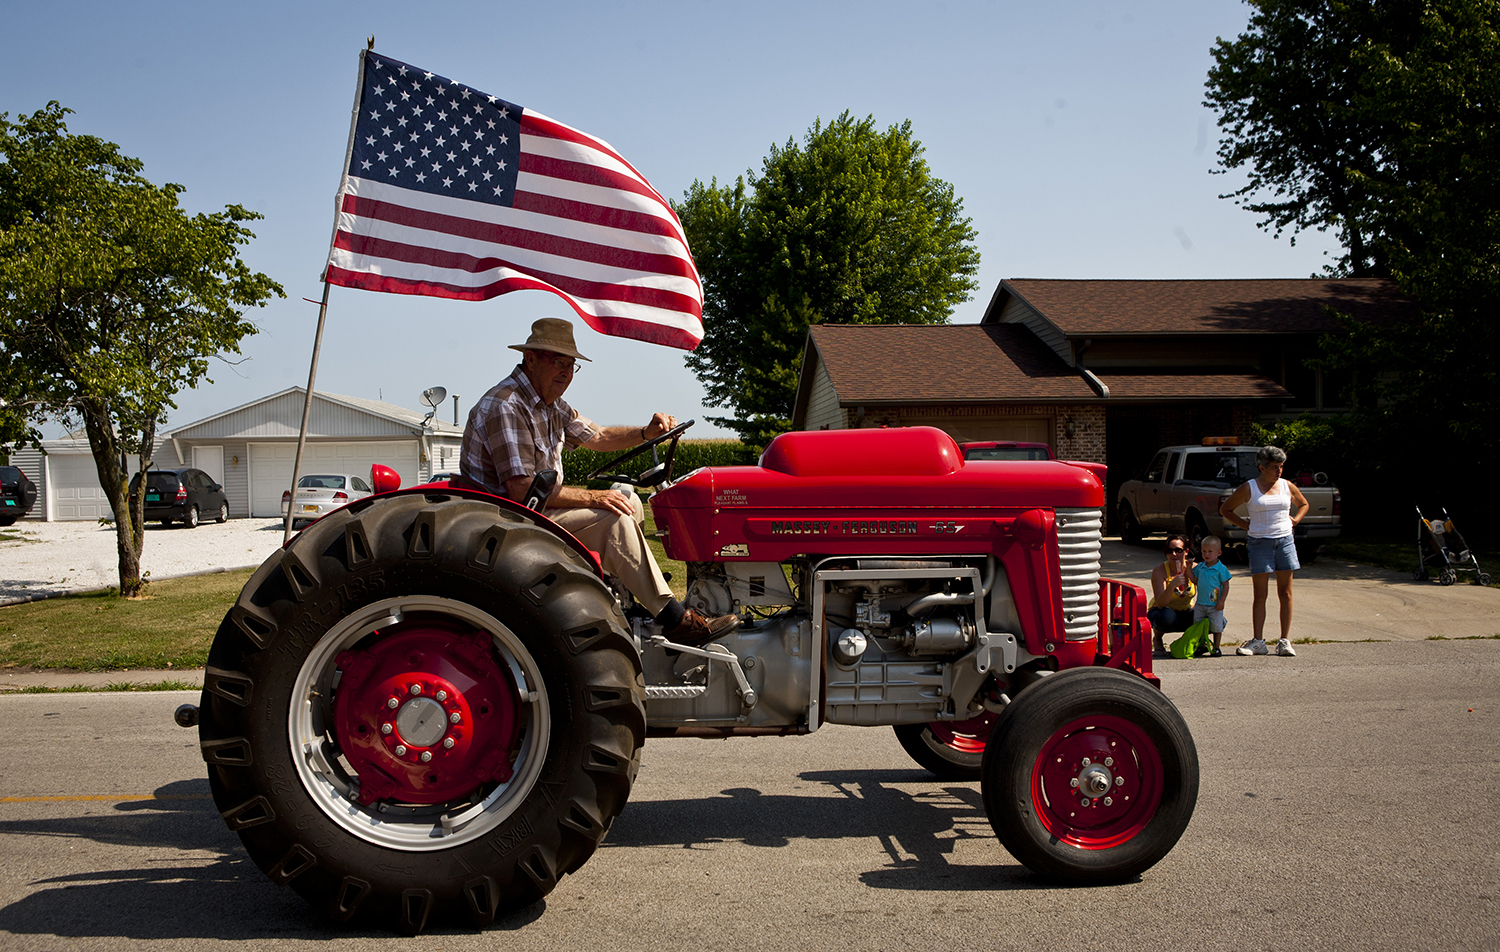 Russel Miner, pilots his 1963 Massey Ferguson LP antique tractor down Wyatt Avenue during the Fourth of July celebration parade, Wednesday, July 4, 2012, in Franklin, Ill. Franklin's Fourth of July celebration included a festival at Franklin Park with a basketball tournament along with the annual burgoo soup sale. Justin L. Fowler/The State Journal-Register